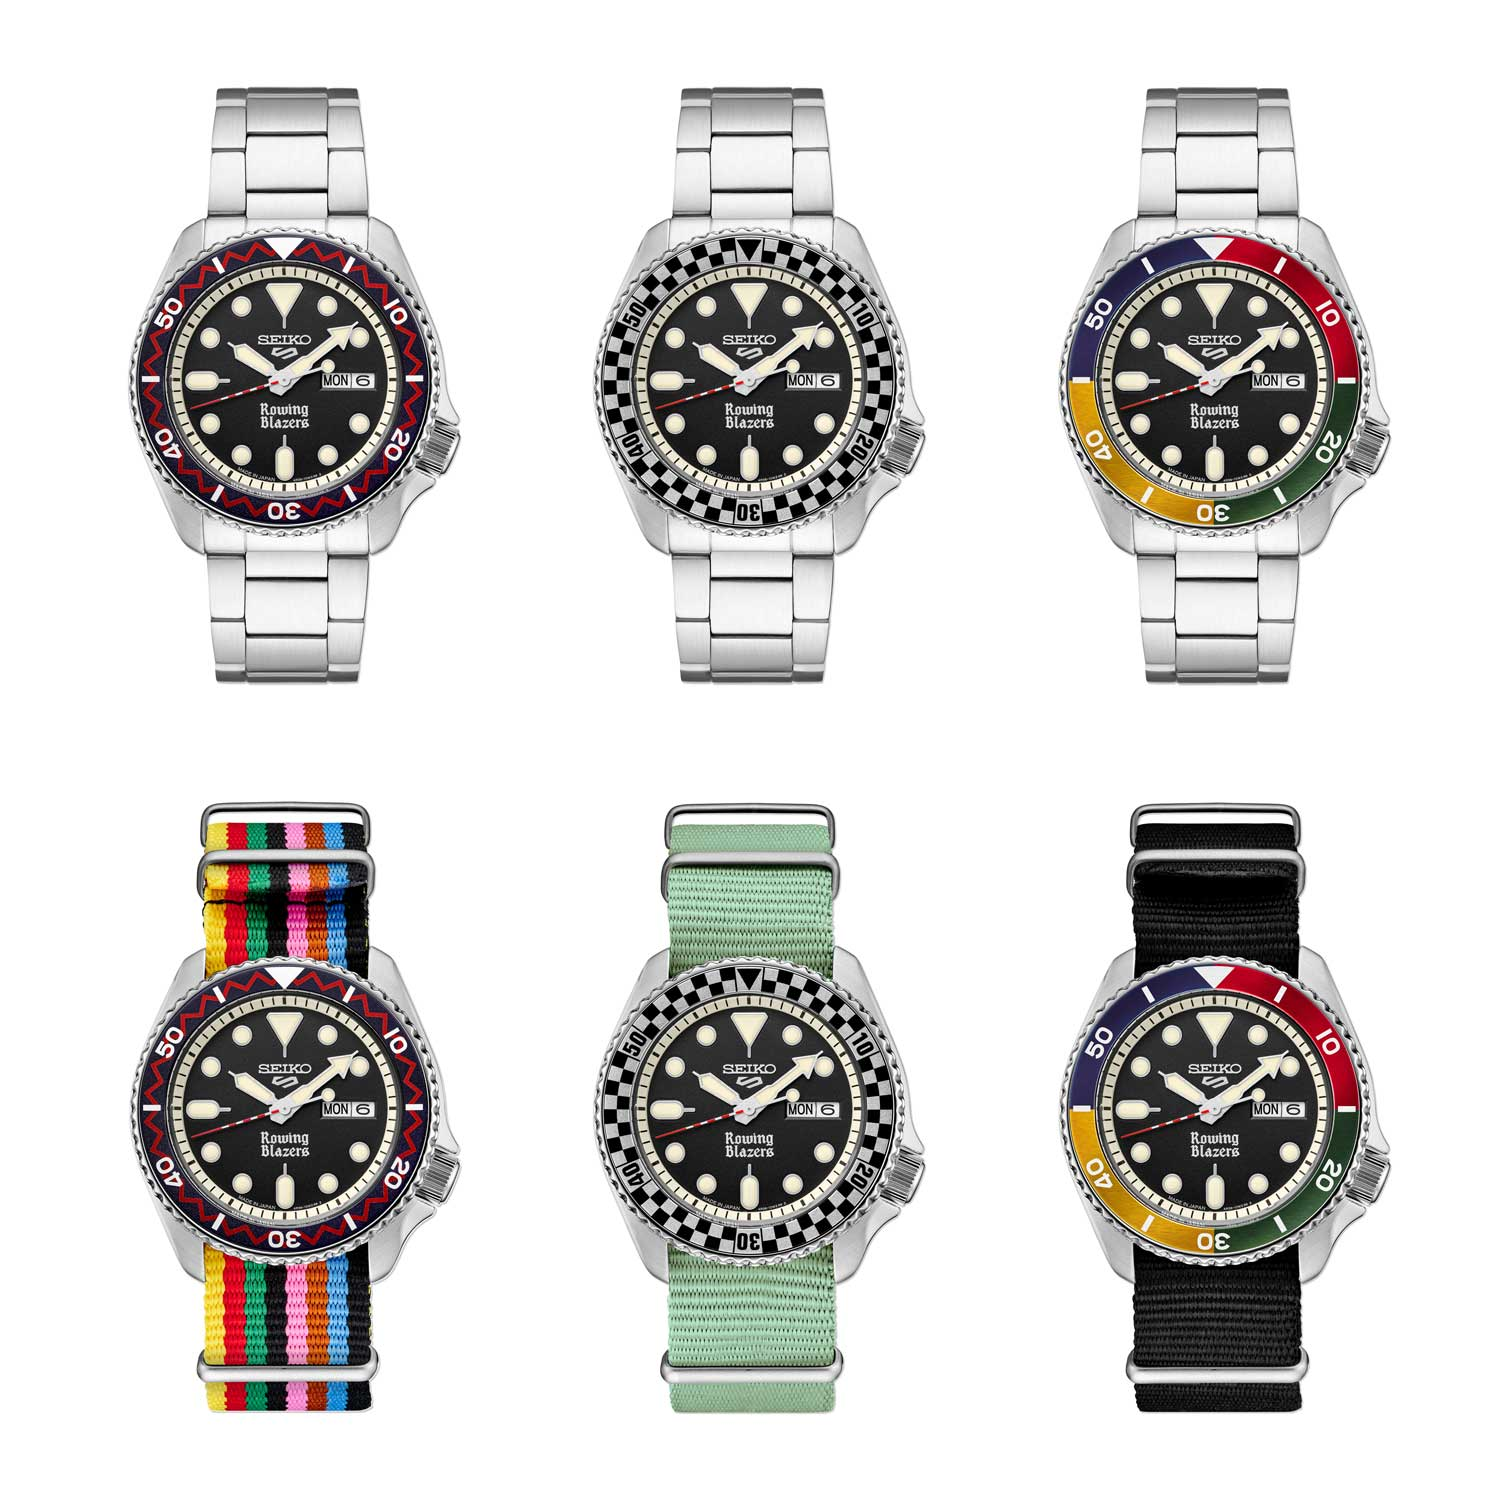 Designed by Jack Carlson and Seiko's, the new collaborative capsule includes two limited-edition watches and one special edition.